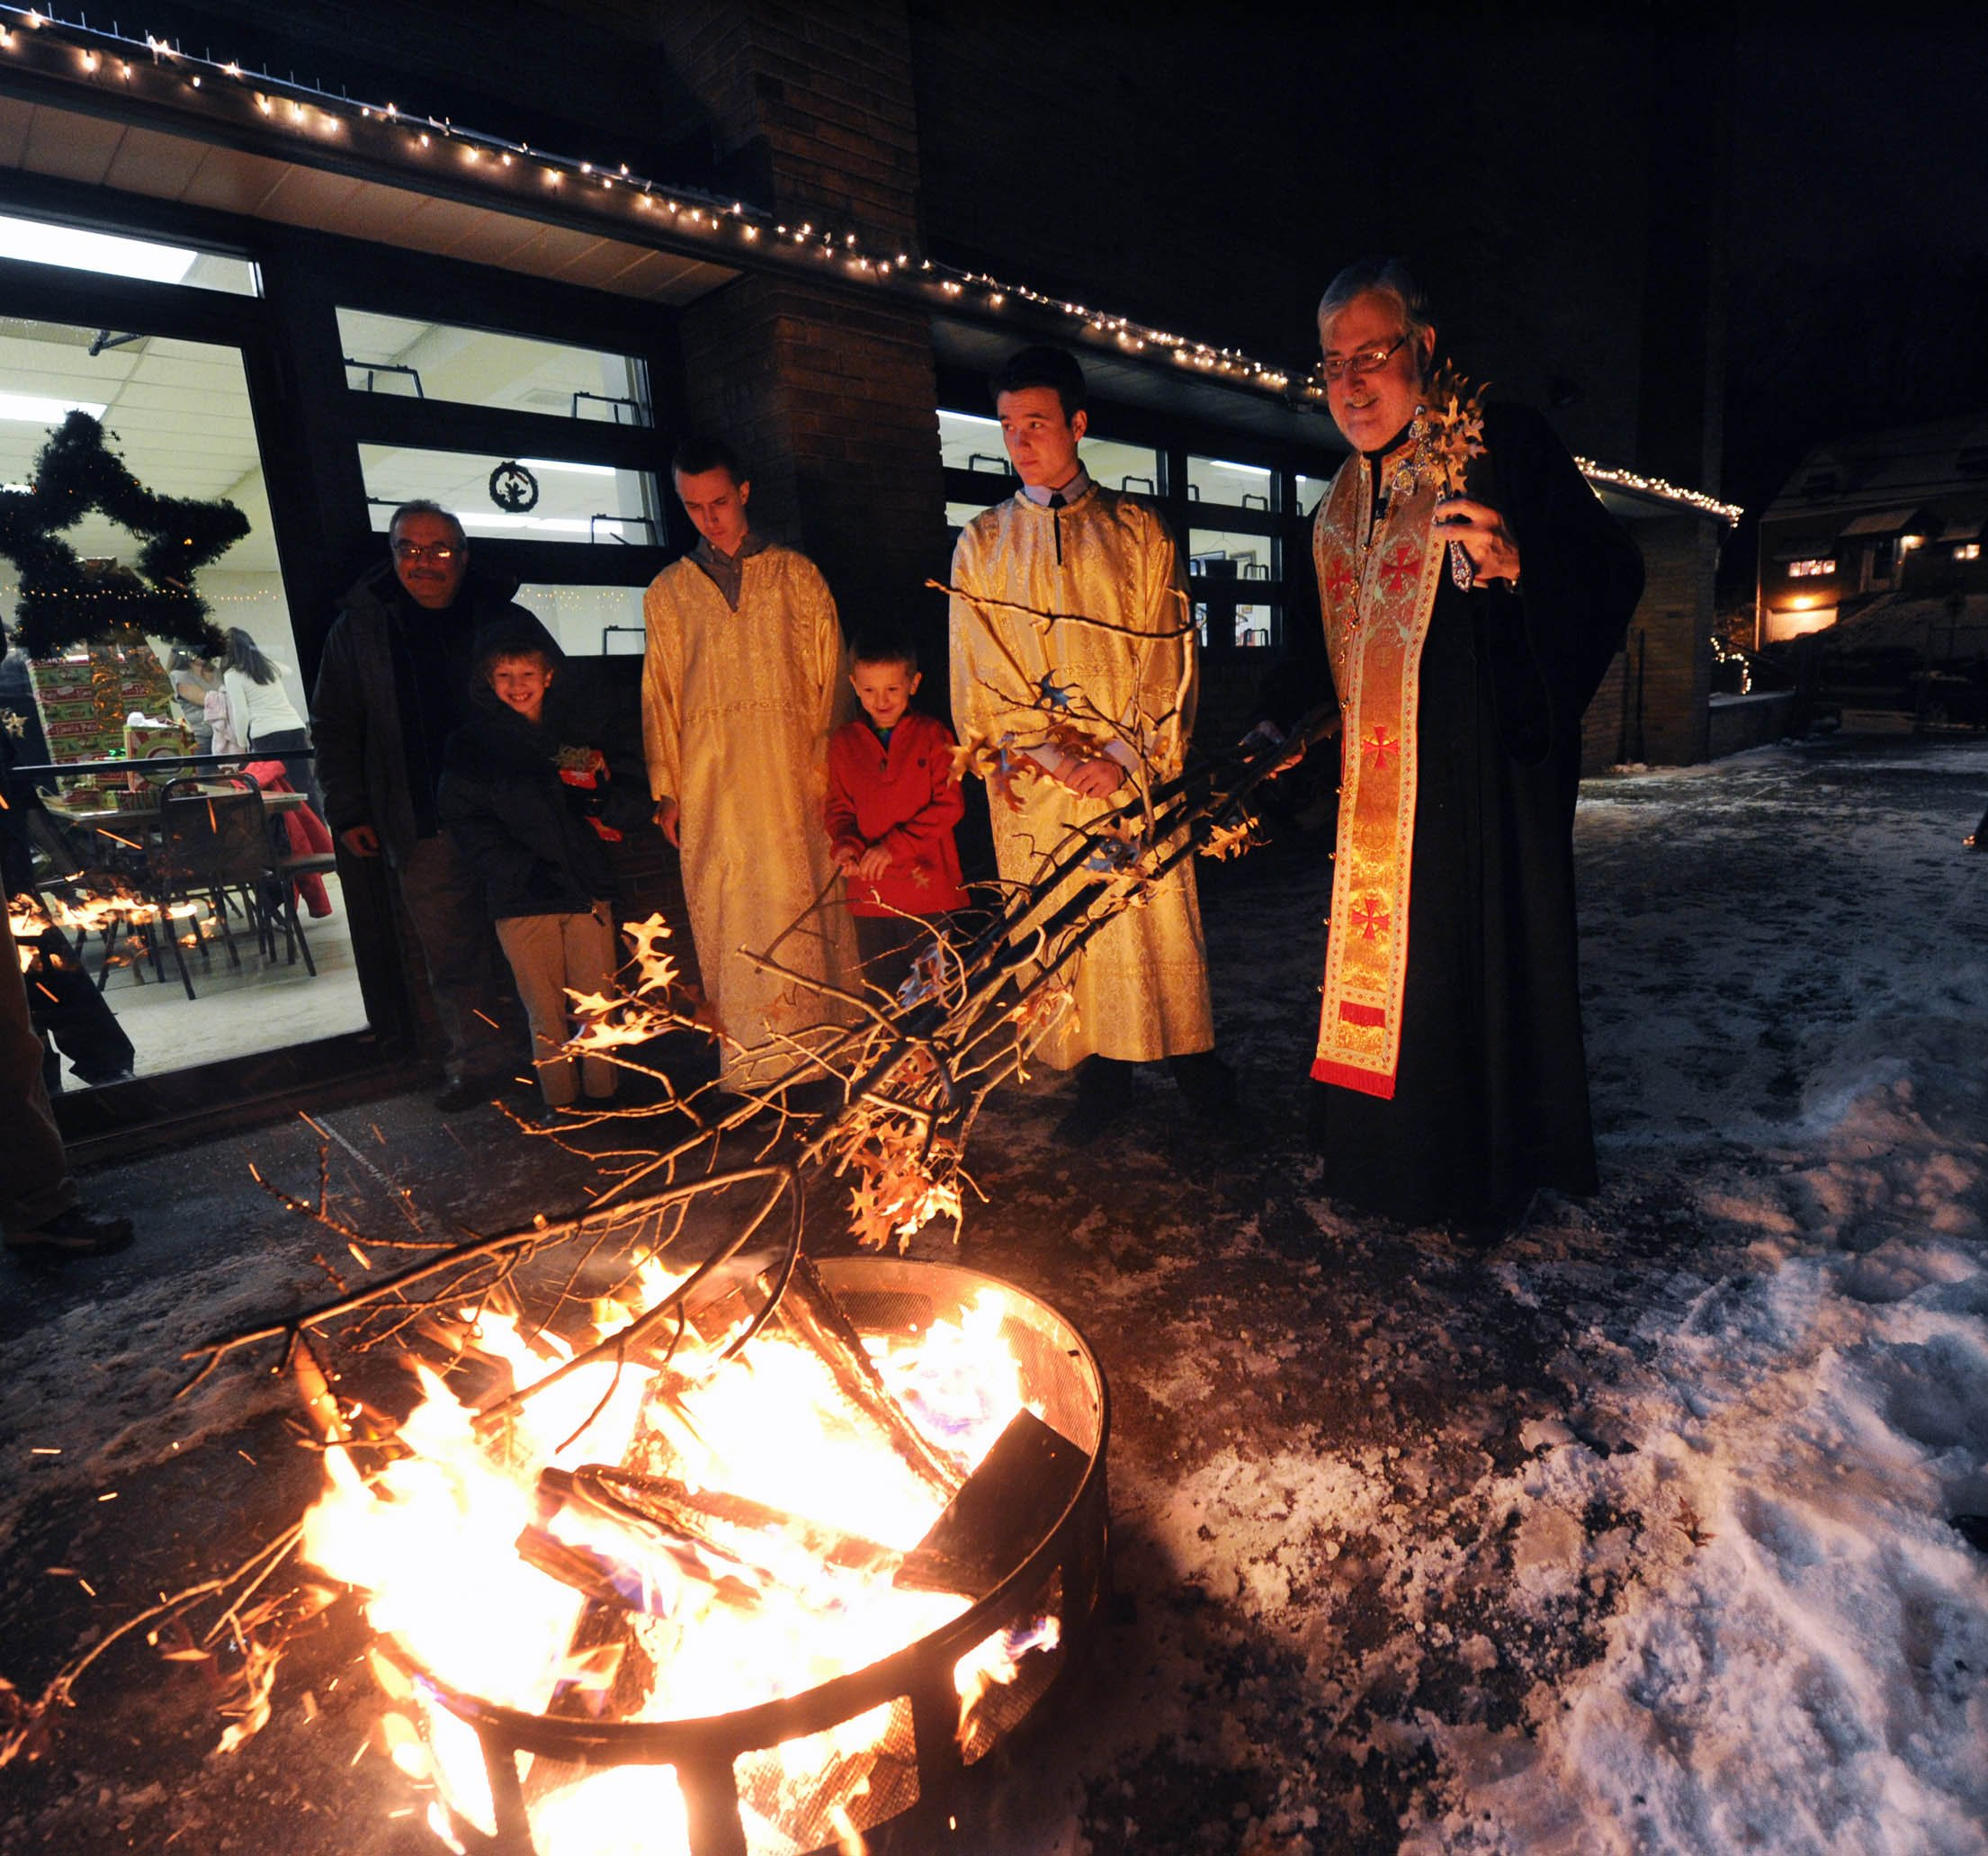 """John Heller / Post - Gazette Local / Yule Log McKeesport - Jan. 06, 2014 - Father Stevan Rocknage , right, Pastor of St. Sava Serbian Orthodox Church in McKeesport, oversees the burning of the """"Badnjak"""" or Yule log .The ceremony is usually held out doors but due to extreme cold weather, the Orthodox Christmas Eve service was held in the parish hall under the church. Only the burning of the log was outdoors."""